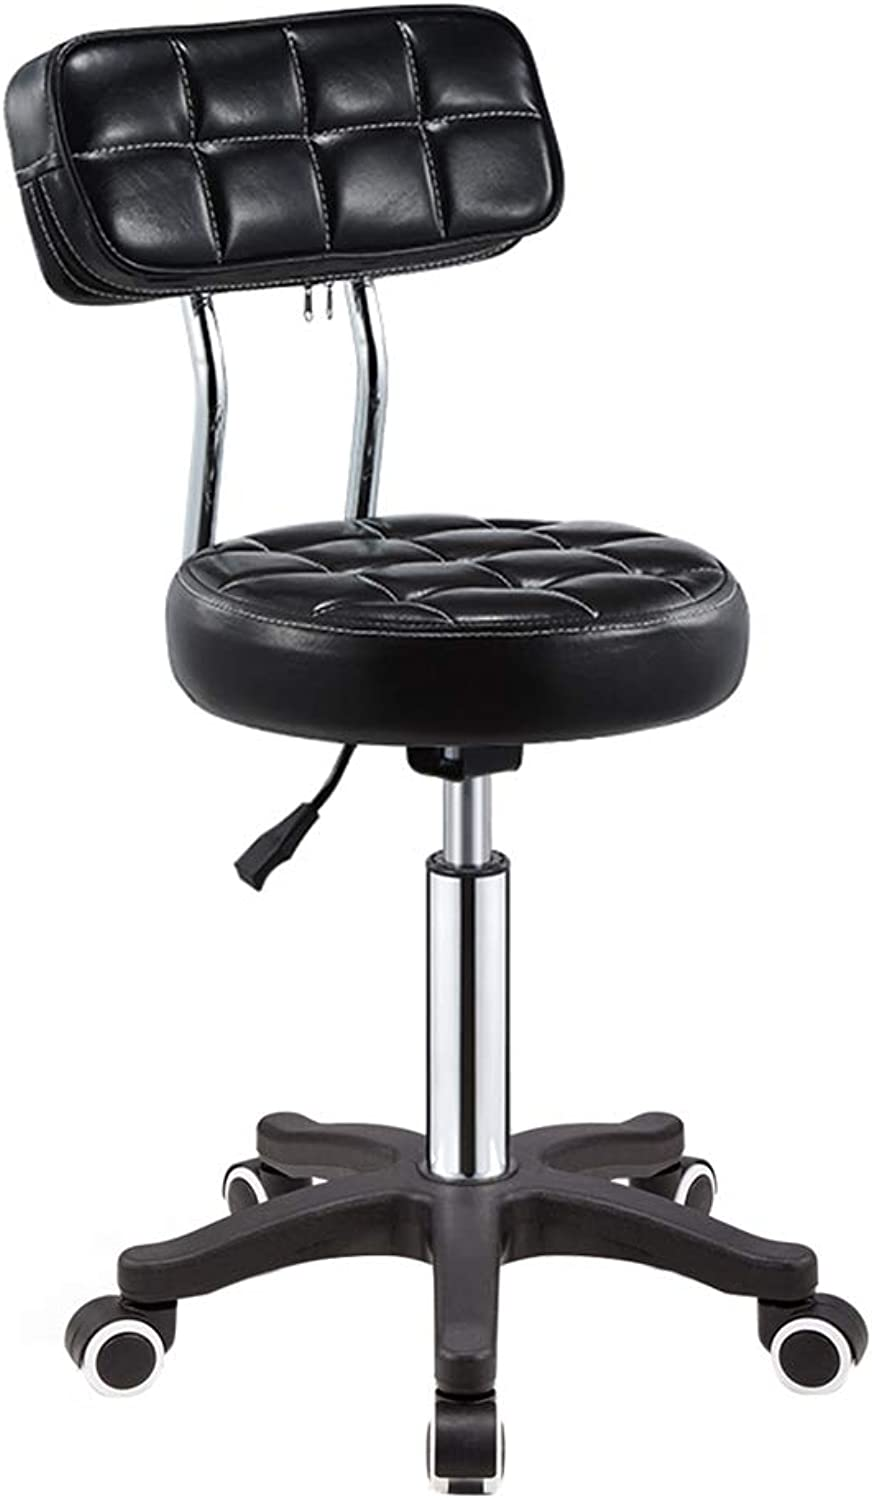 LIQICAI Bar Stool Universal Wheel Sliding Swivel Chair with Backrest Faux Leather Height Adjustable, 4 colors Optional (color   Black, Size   1 PCS)